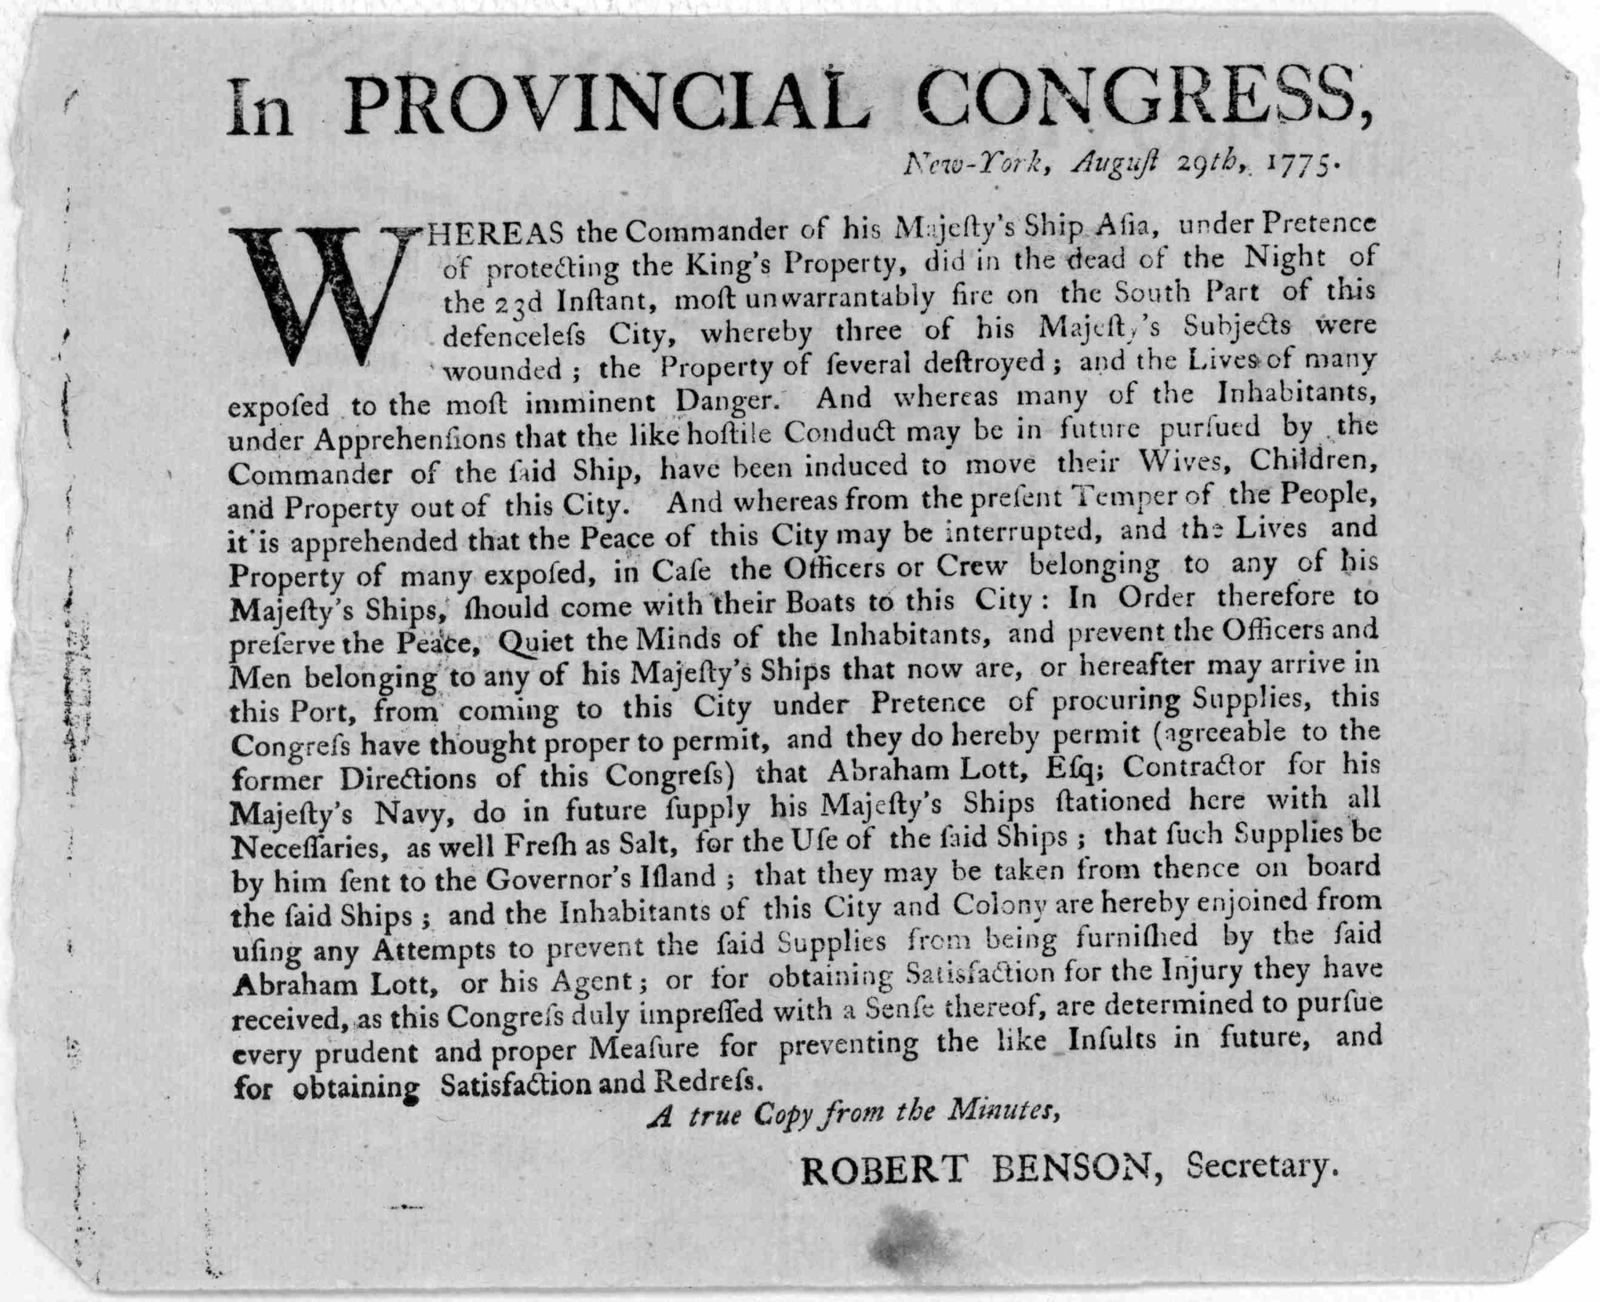 In Provincial Congress. New-York, August 29th 1775. Whereas the Commander of his Majesty's Ship Asia, under pretence of protecting the King's Property, did in the dead of the night of the 23d instant, most unwarrantably fire on the south part of